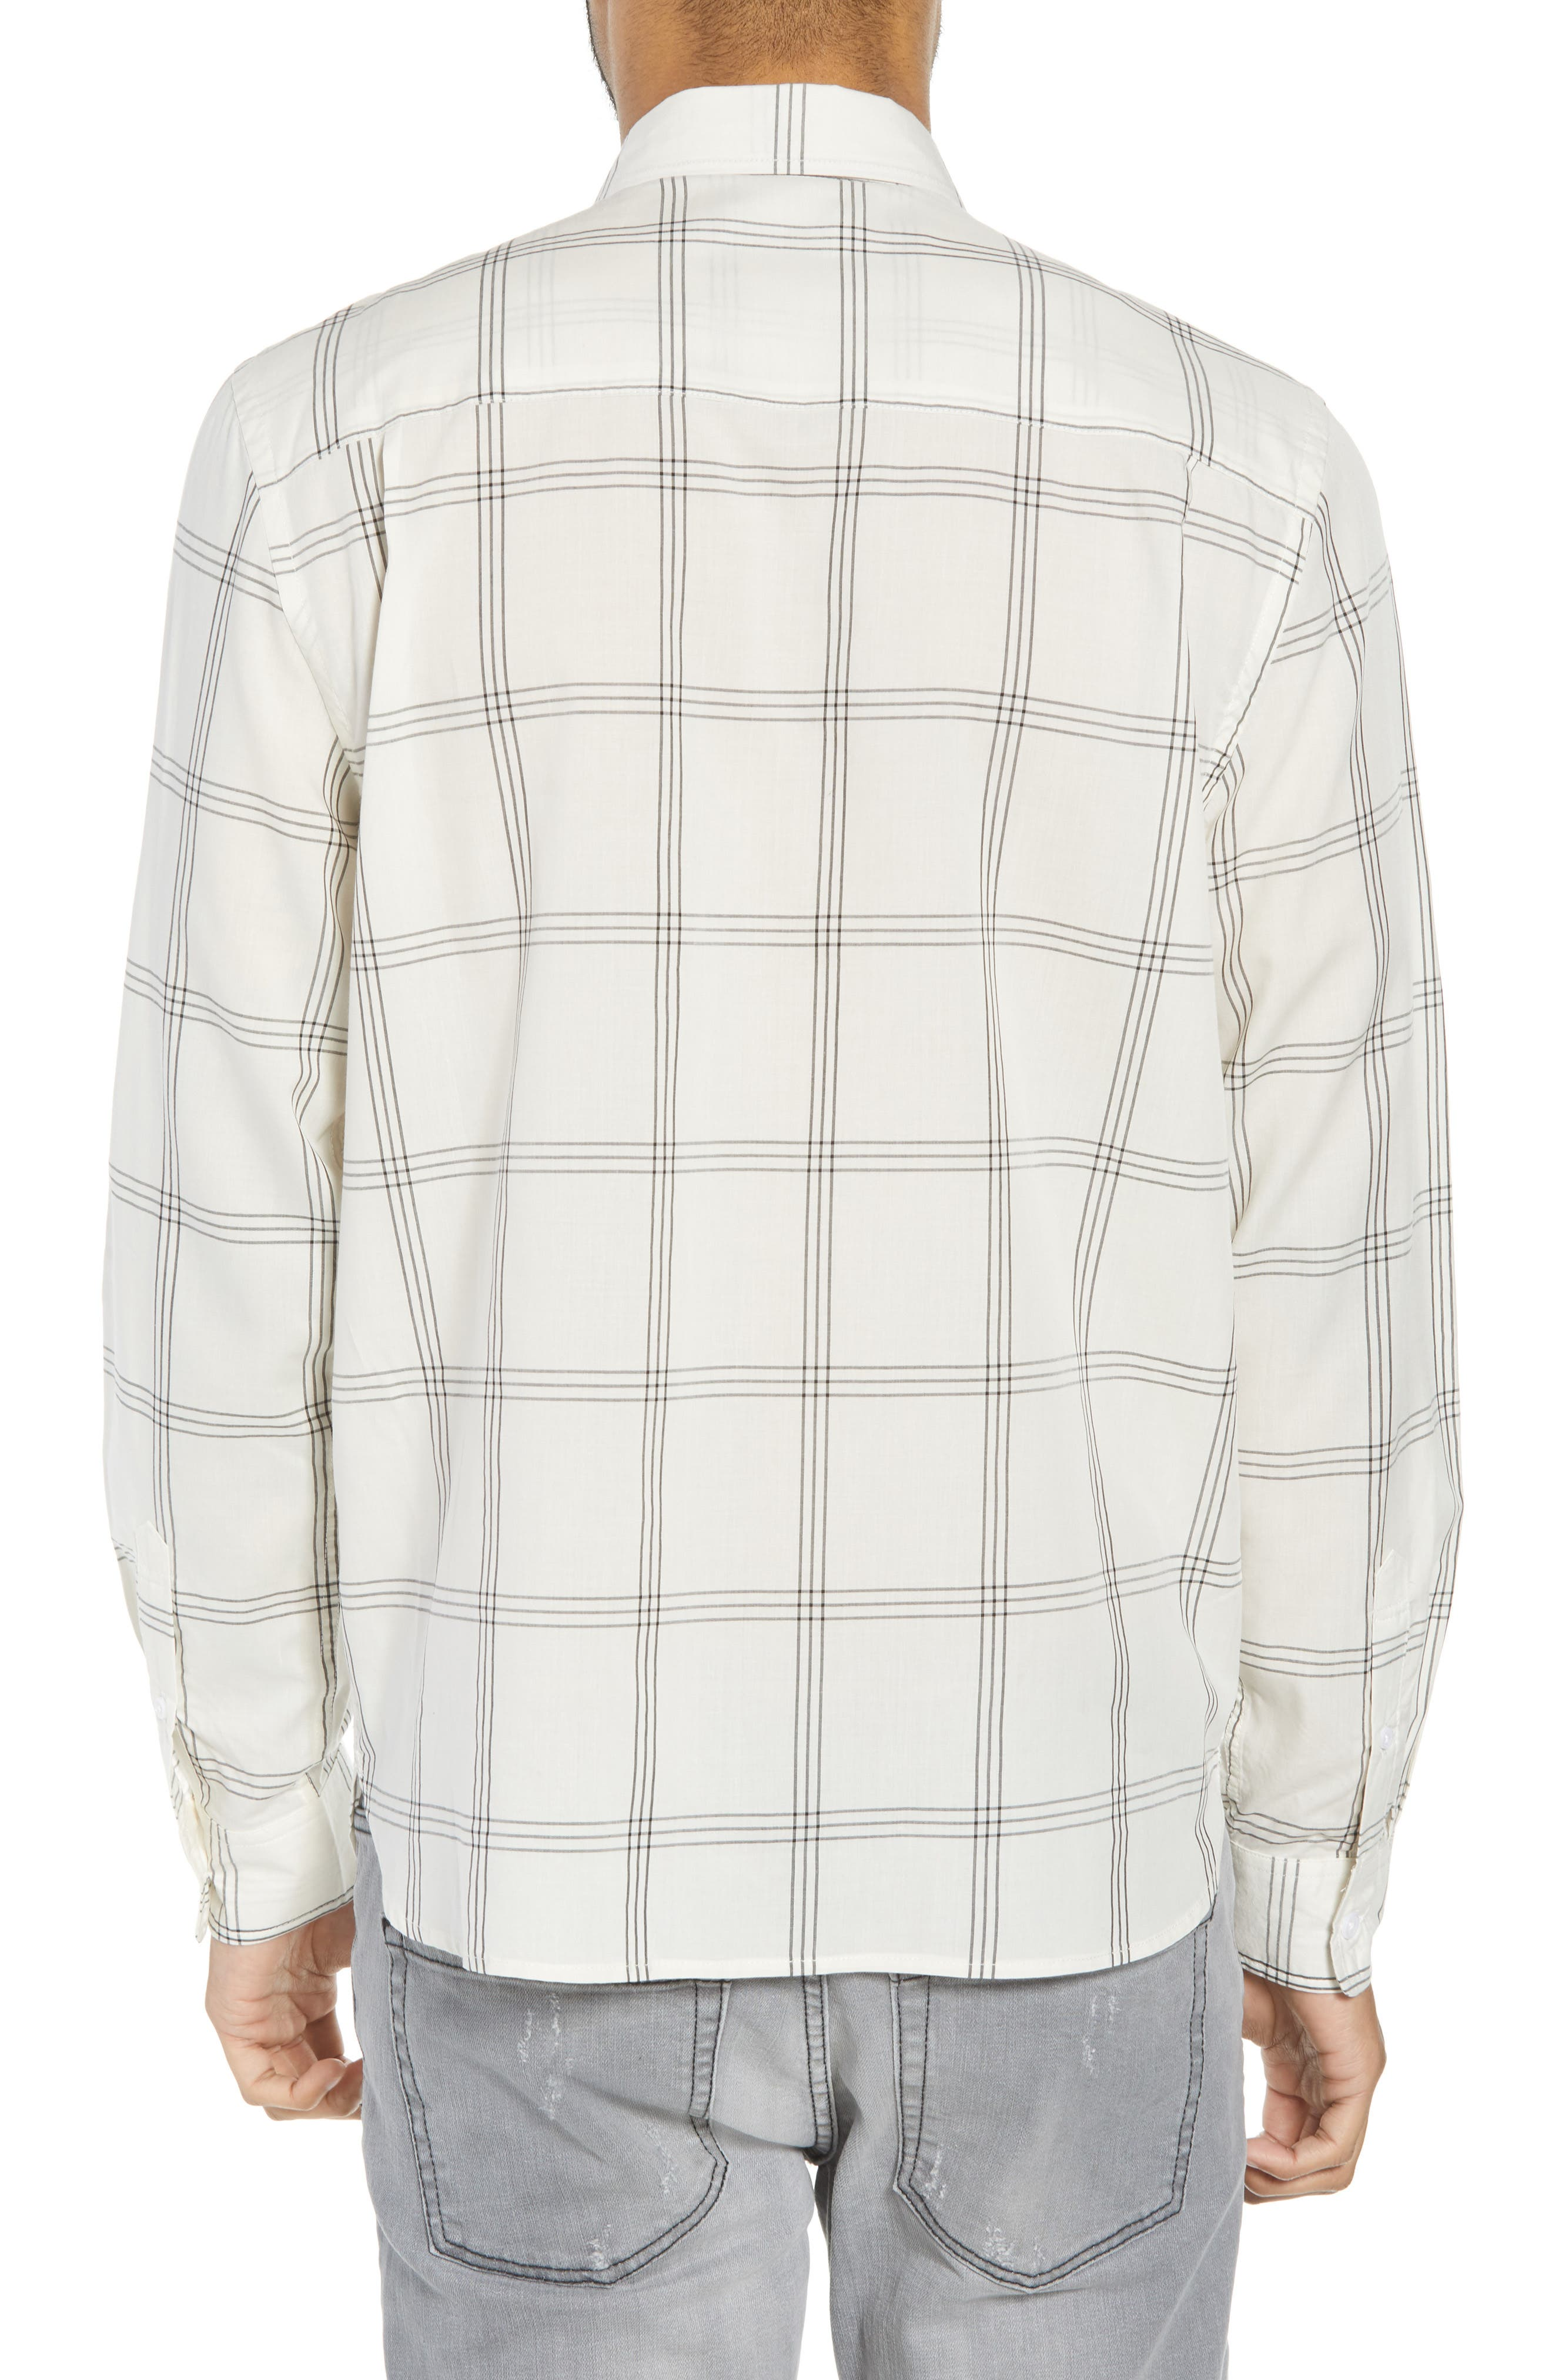 Mickey Windowpane Woven Shirt,                             Alternate thumbnail 2, color,                             WHITE